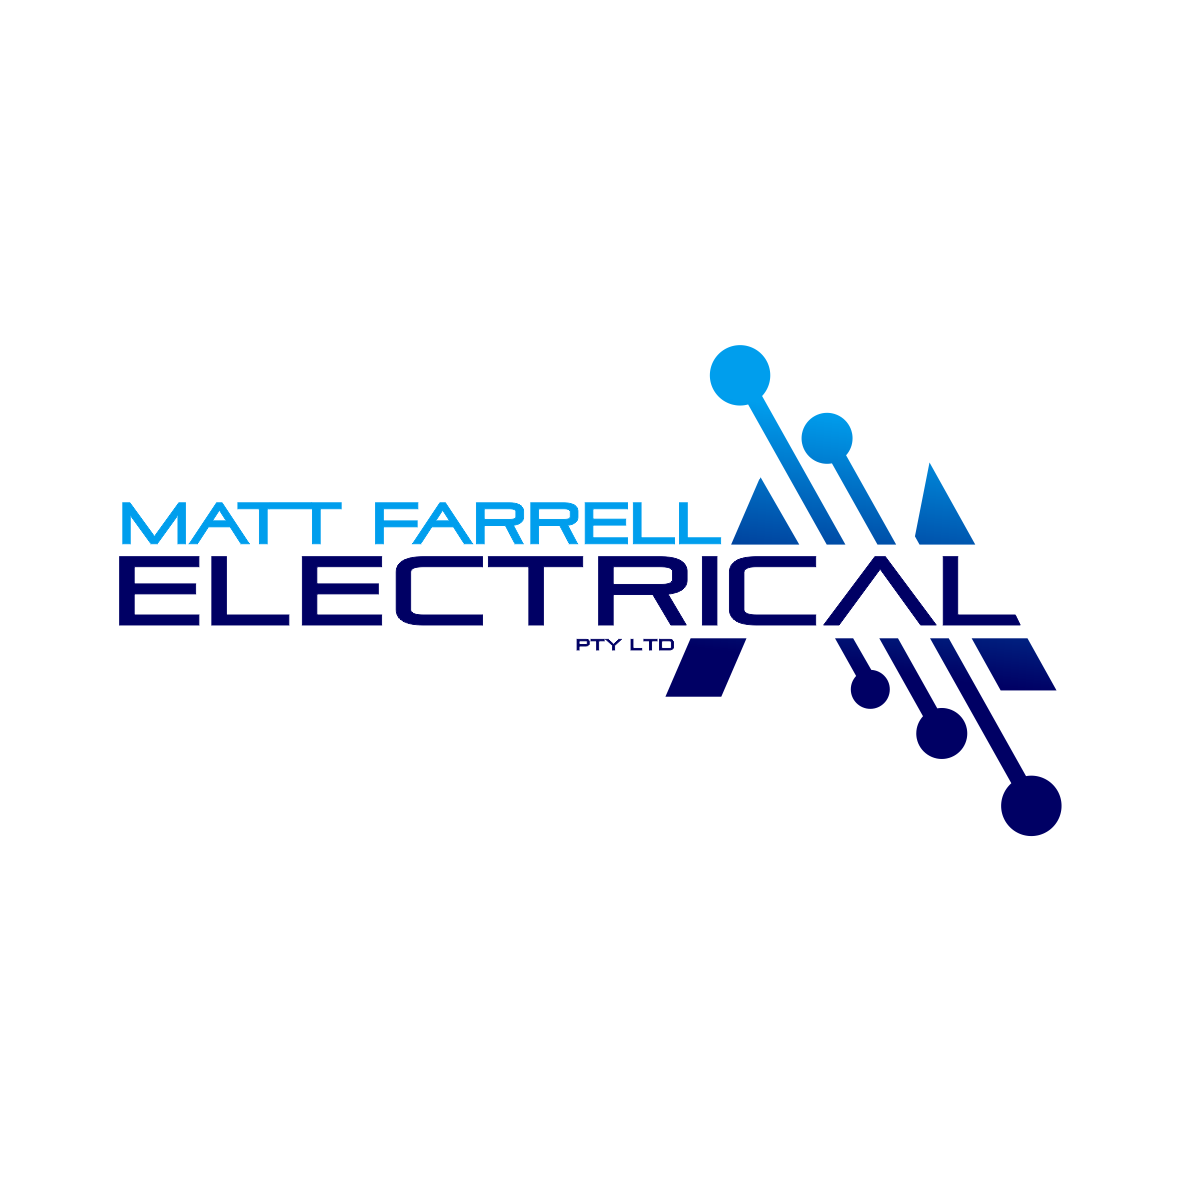 Matt Farrell Electrical